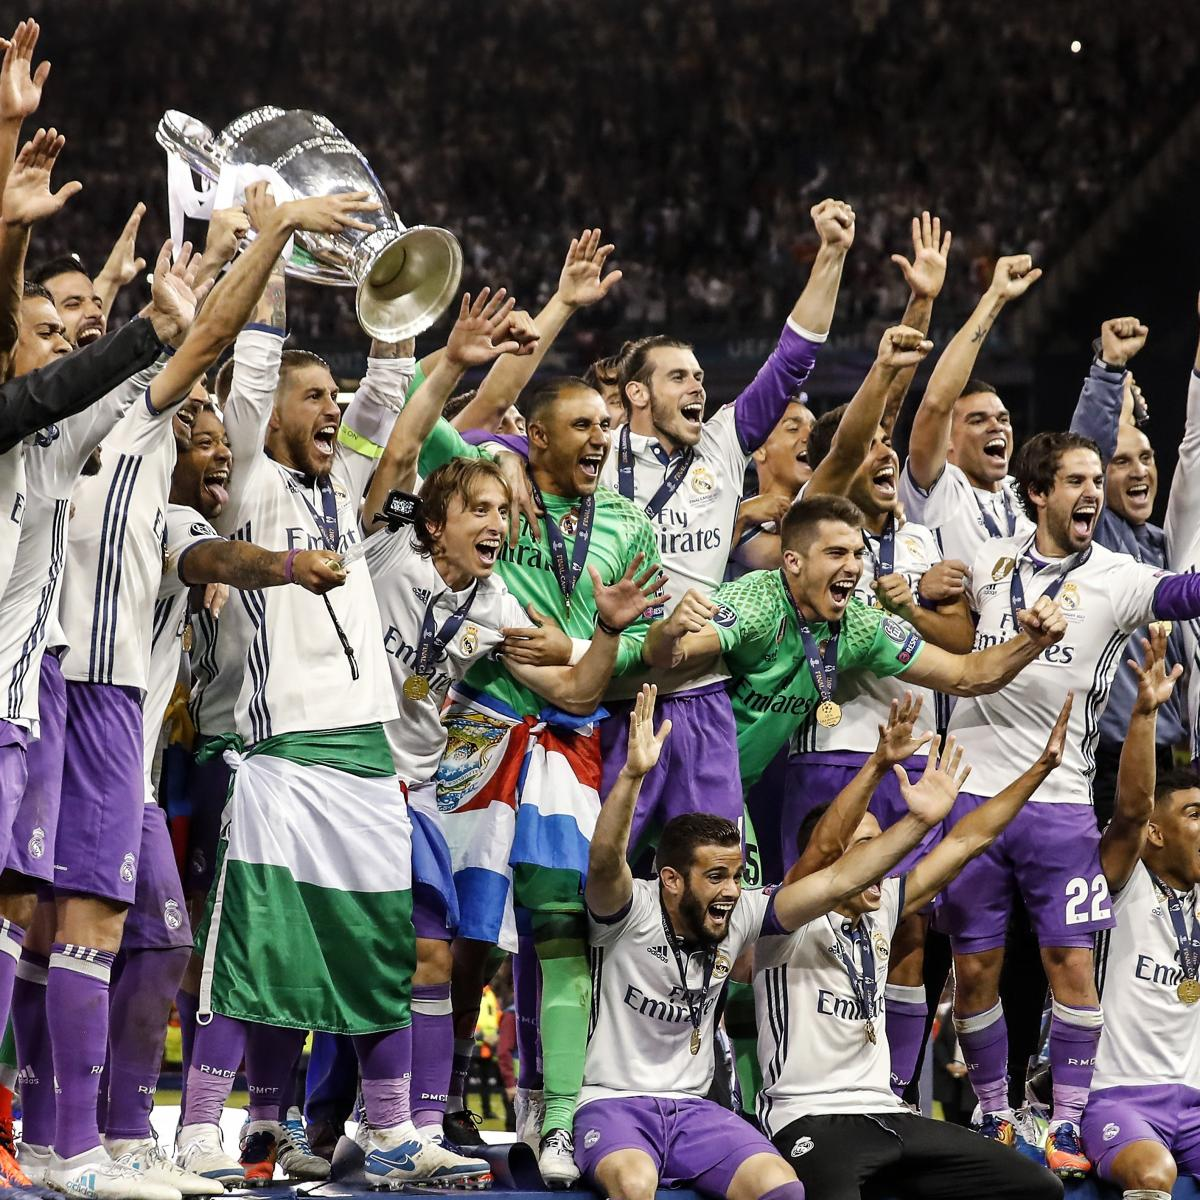 Football Manager Predicts Champions League: B/R Experts' Champions League Last-16 Predictions